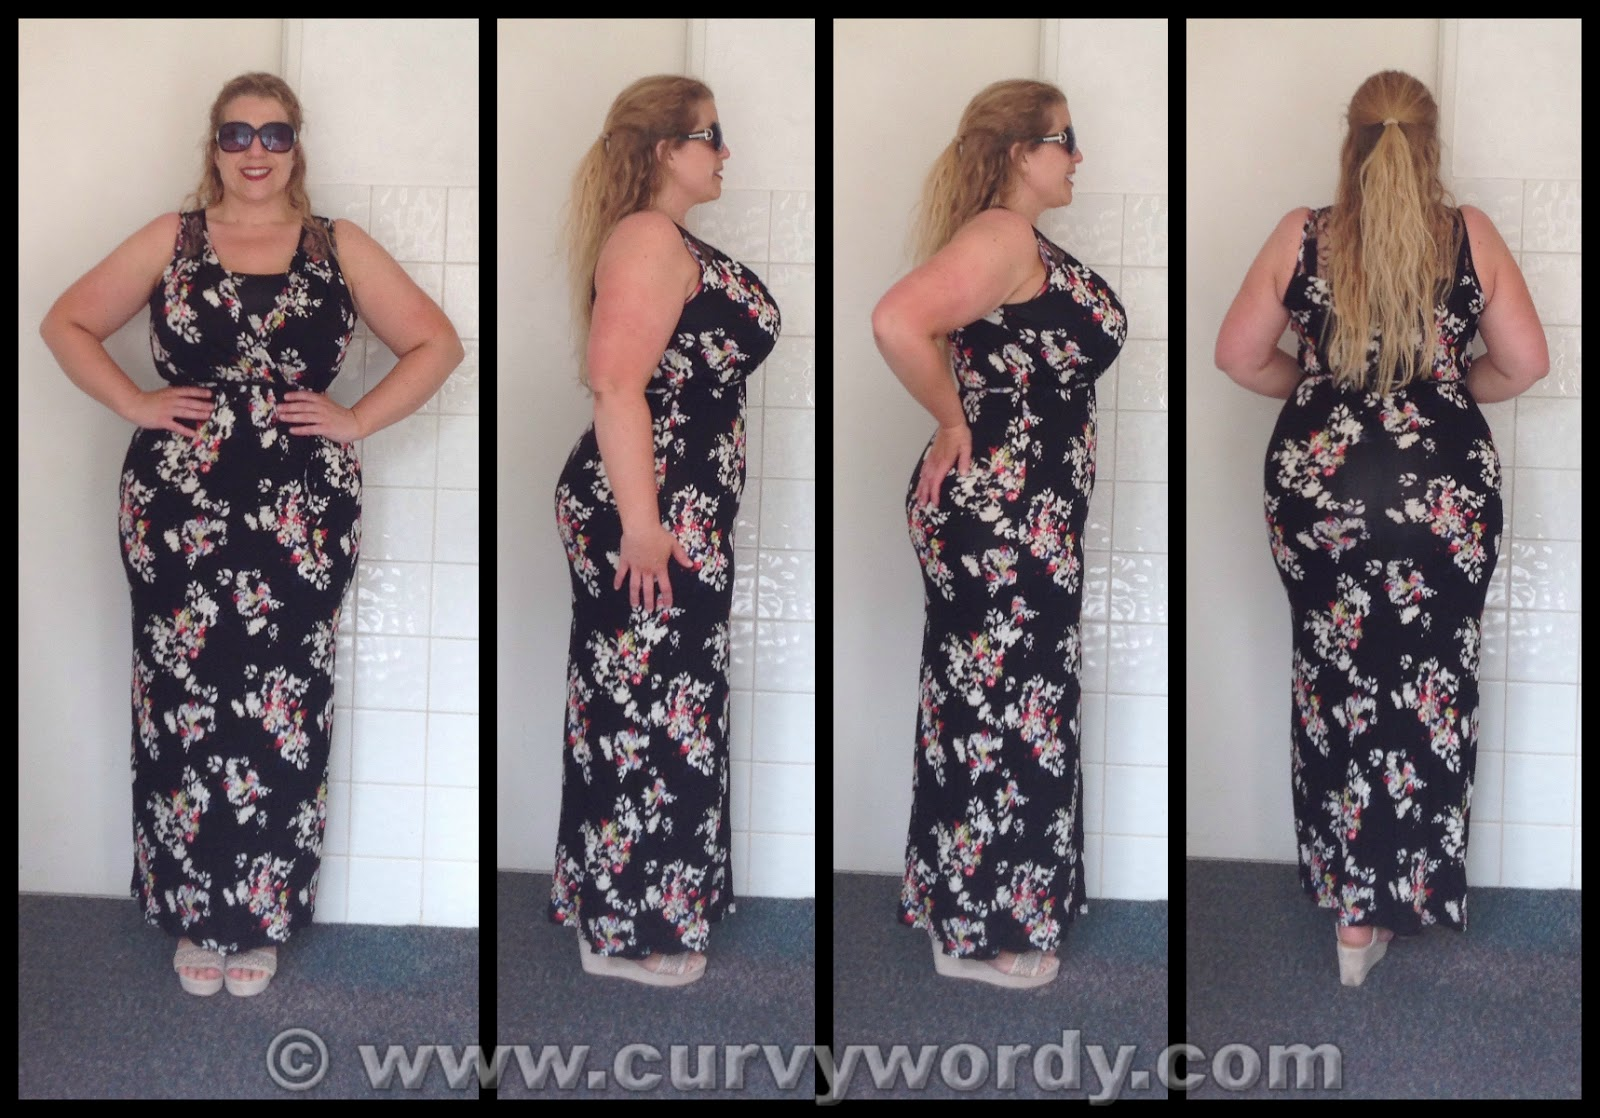 George floral maxi dress dress blog edin for George at asda wedding dresses